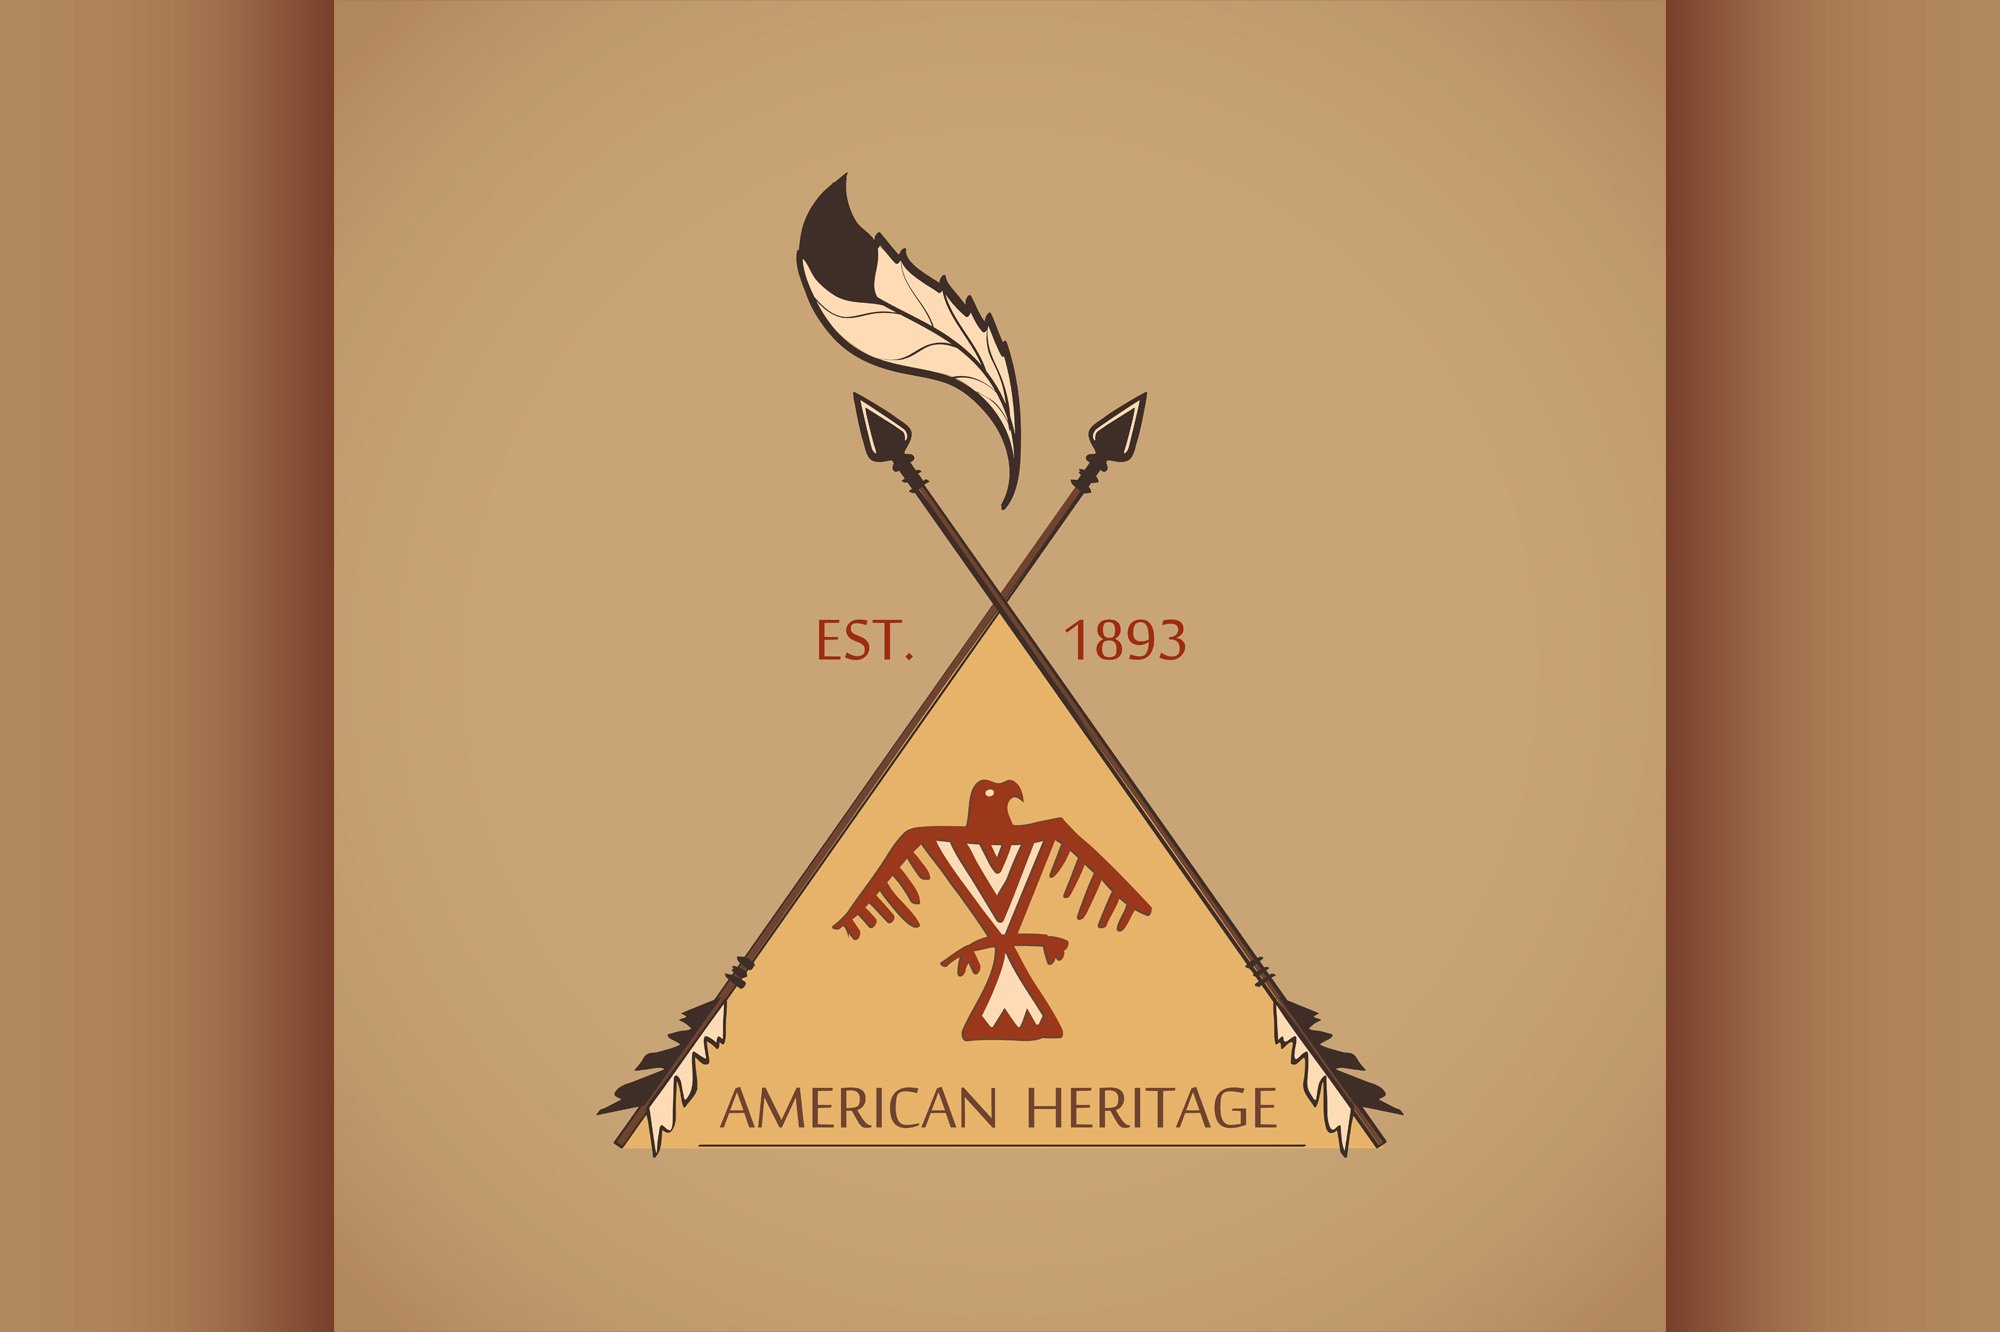 American indian emblems and labels example image 1